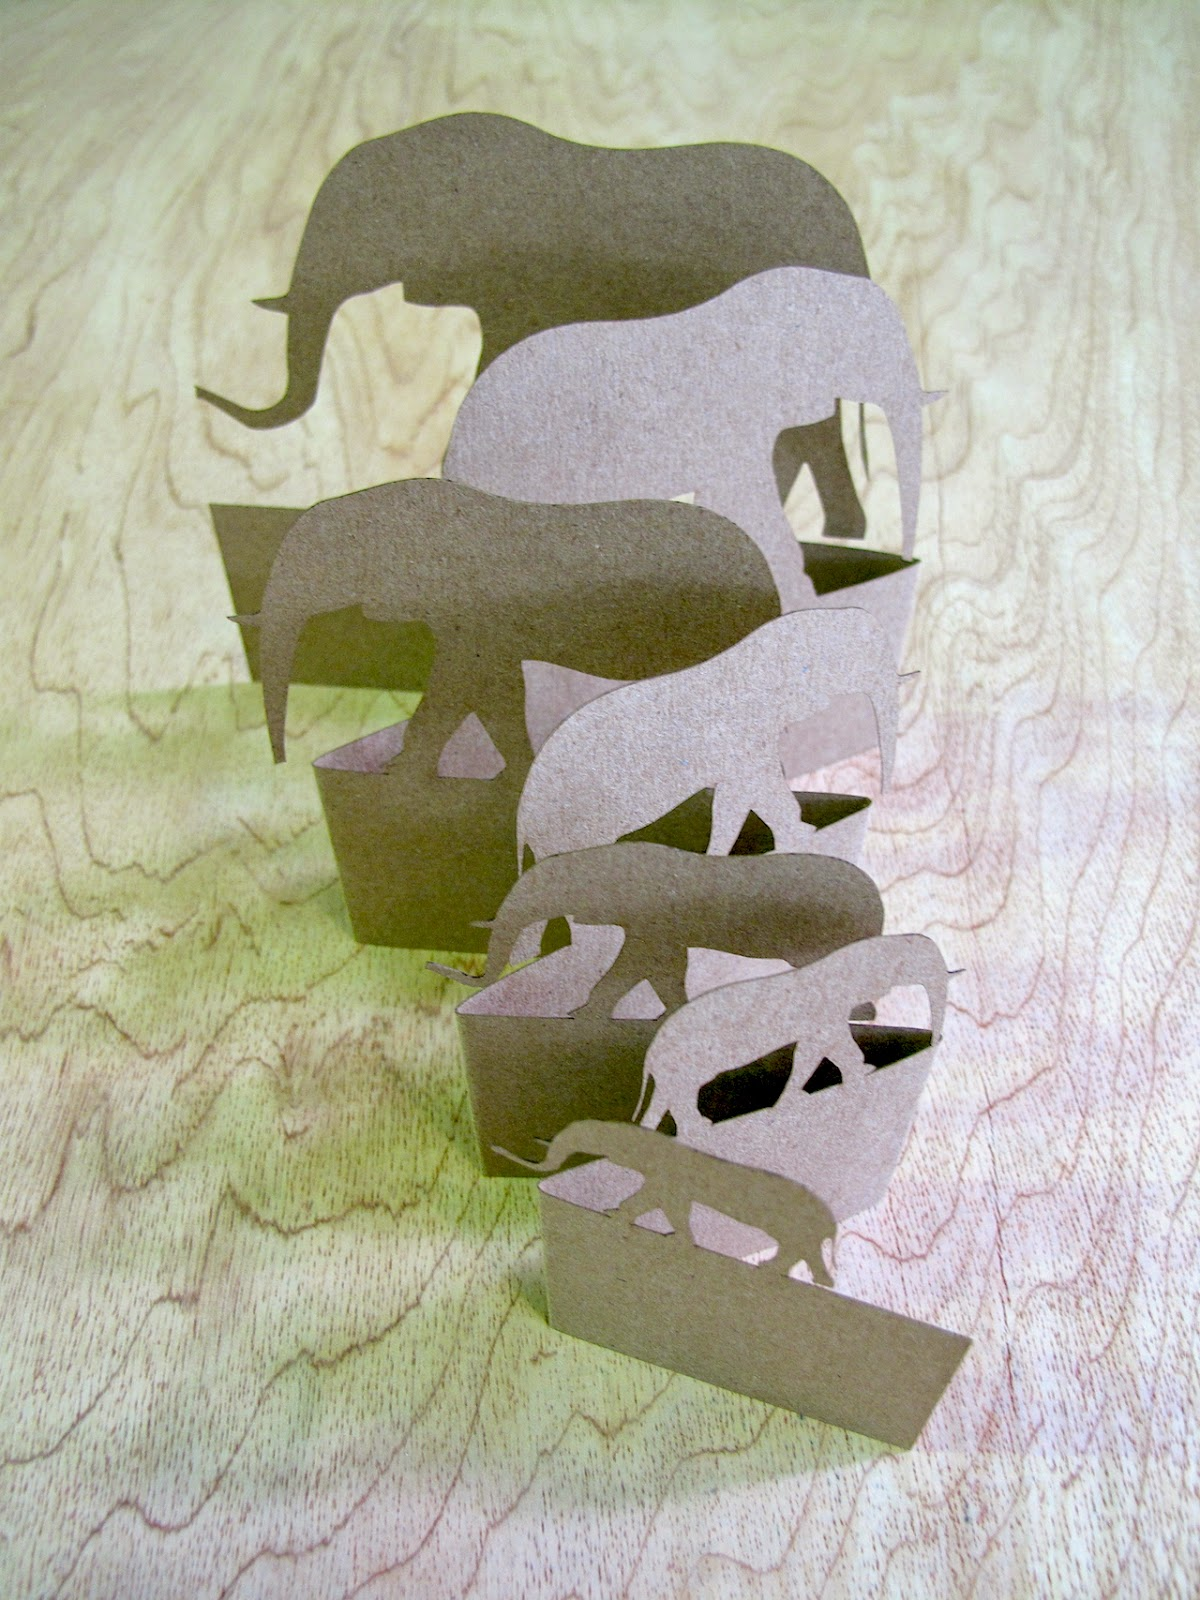 Elephant Popup Card  - Made by Keri Muller  (simpleintrigue.com)